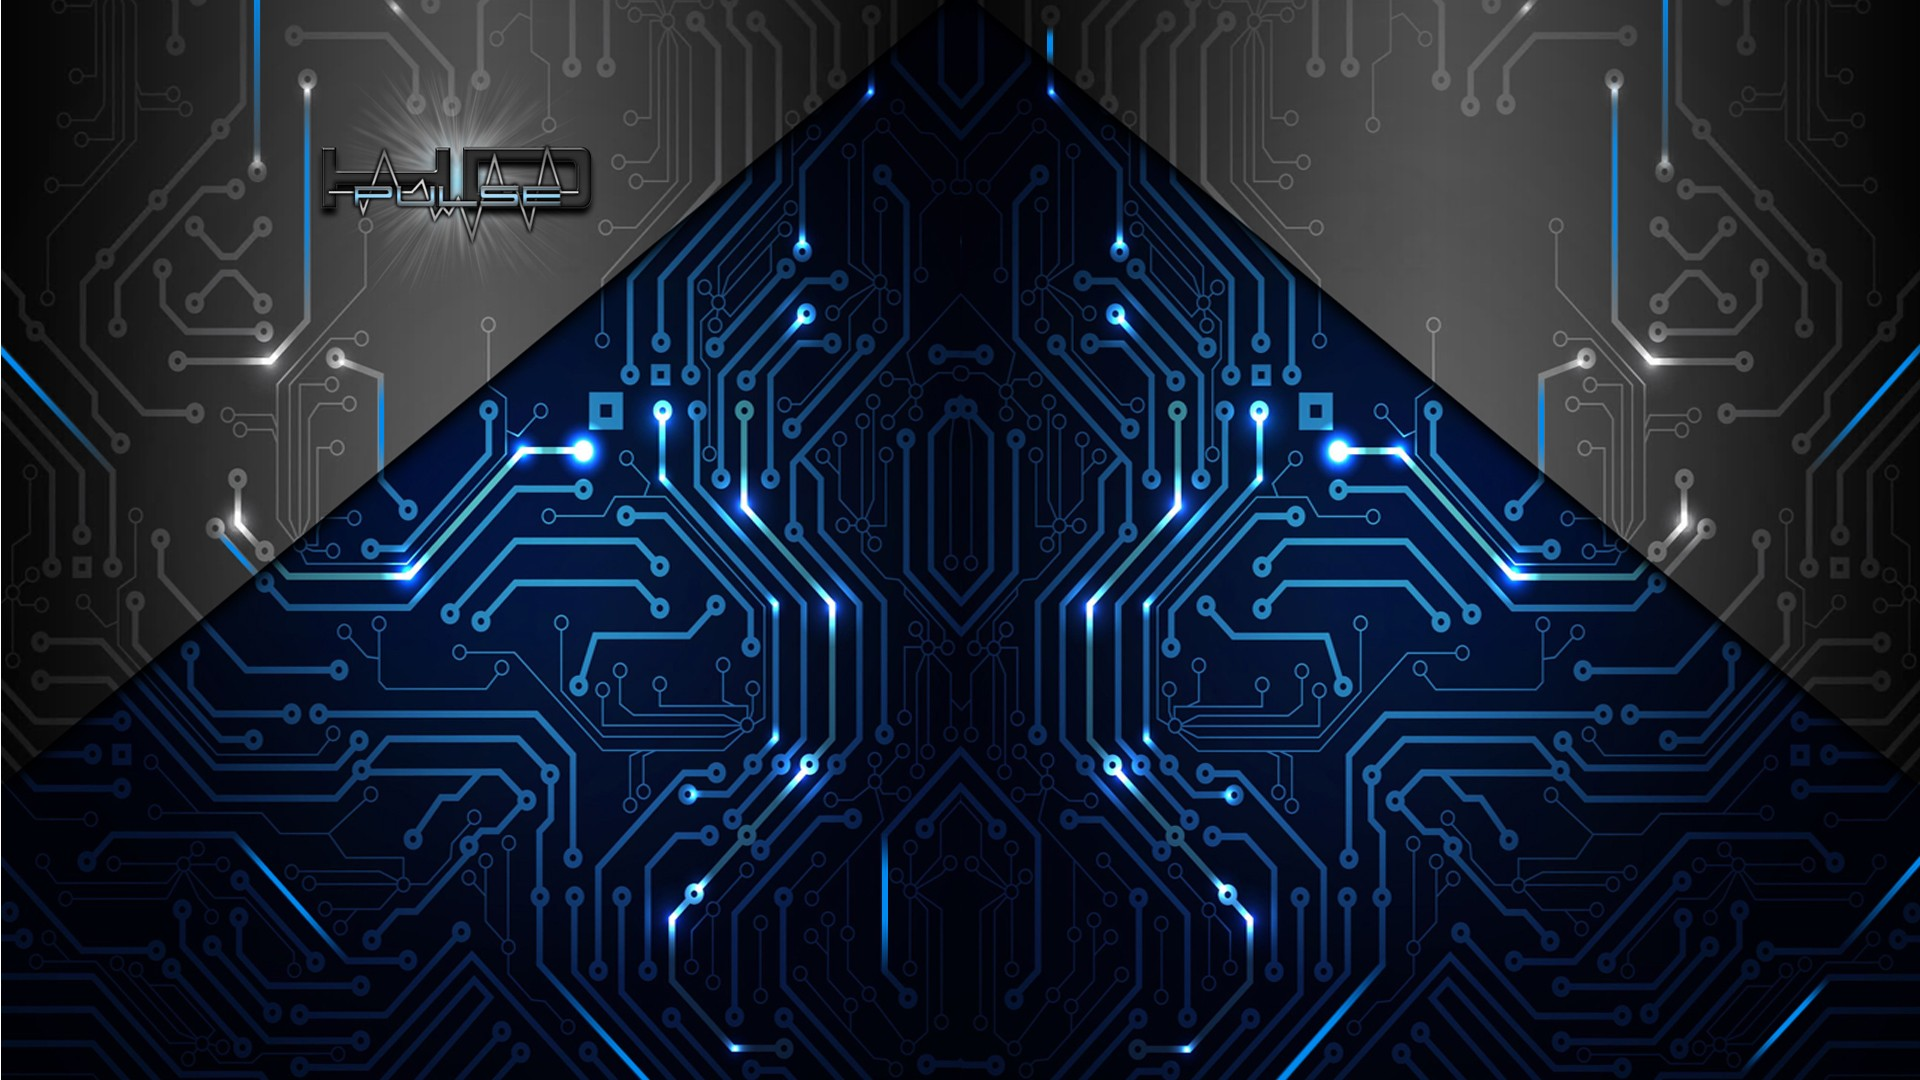 abstract artistic electronics circuit board wallpaper